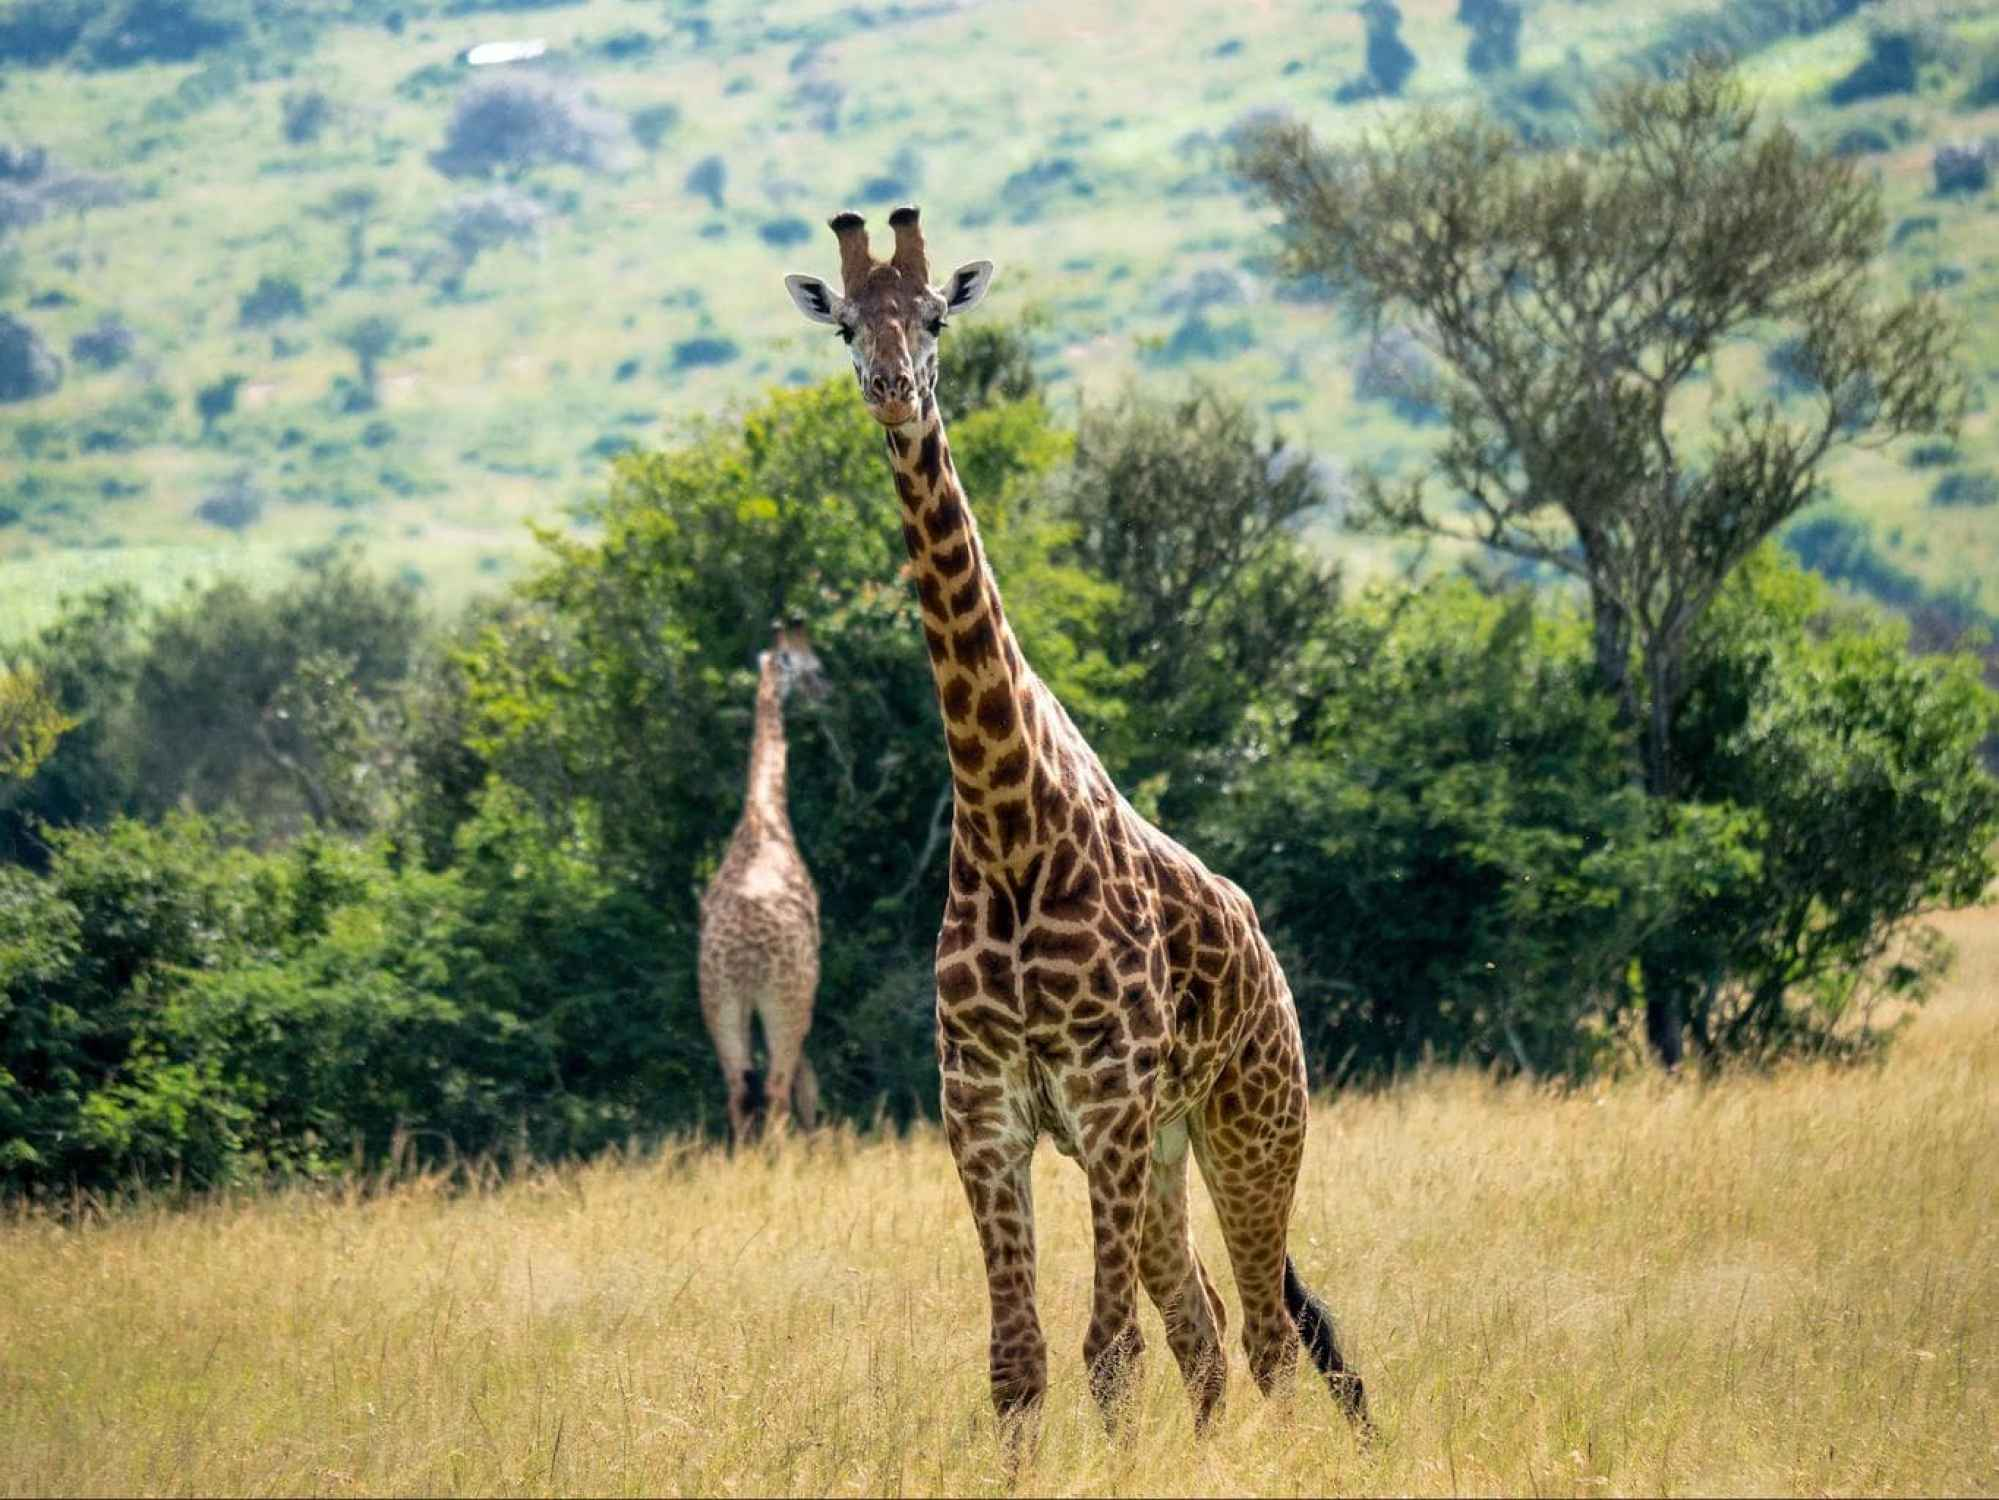 The savannah areas of Akagera National Park with several giraffes